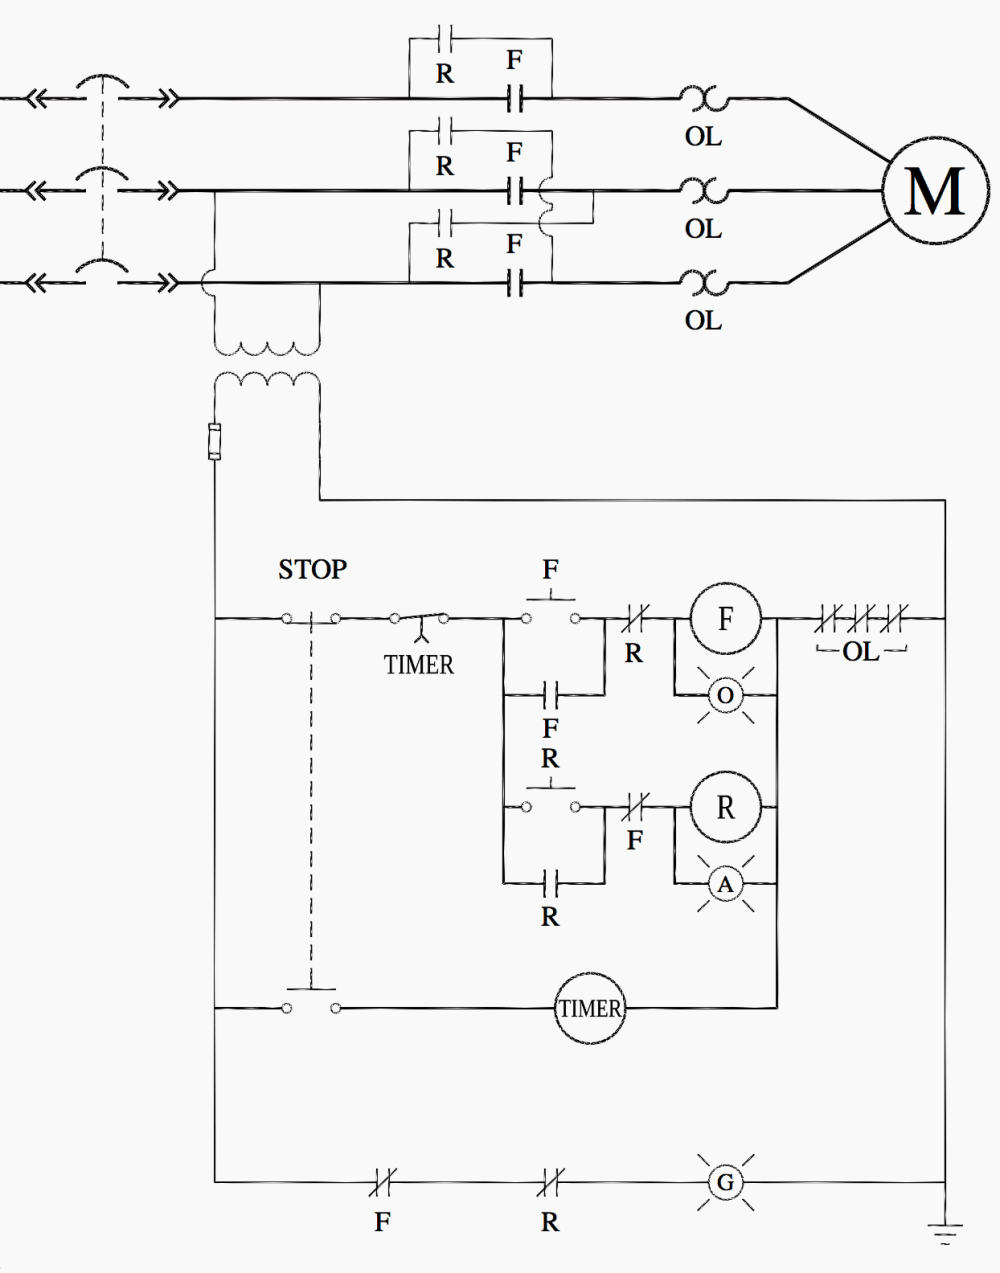 medium resolution of ladder logic for special motor control circuits jogging and motor car diagram motor starter ladder diagram